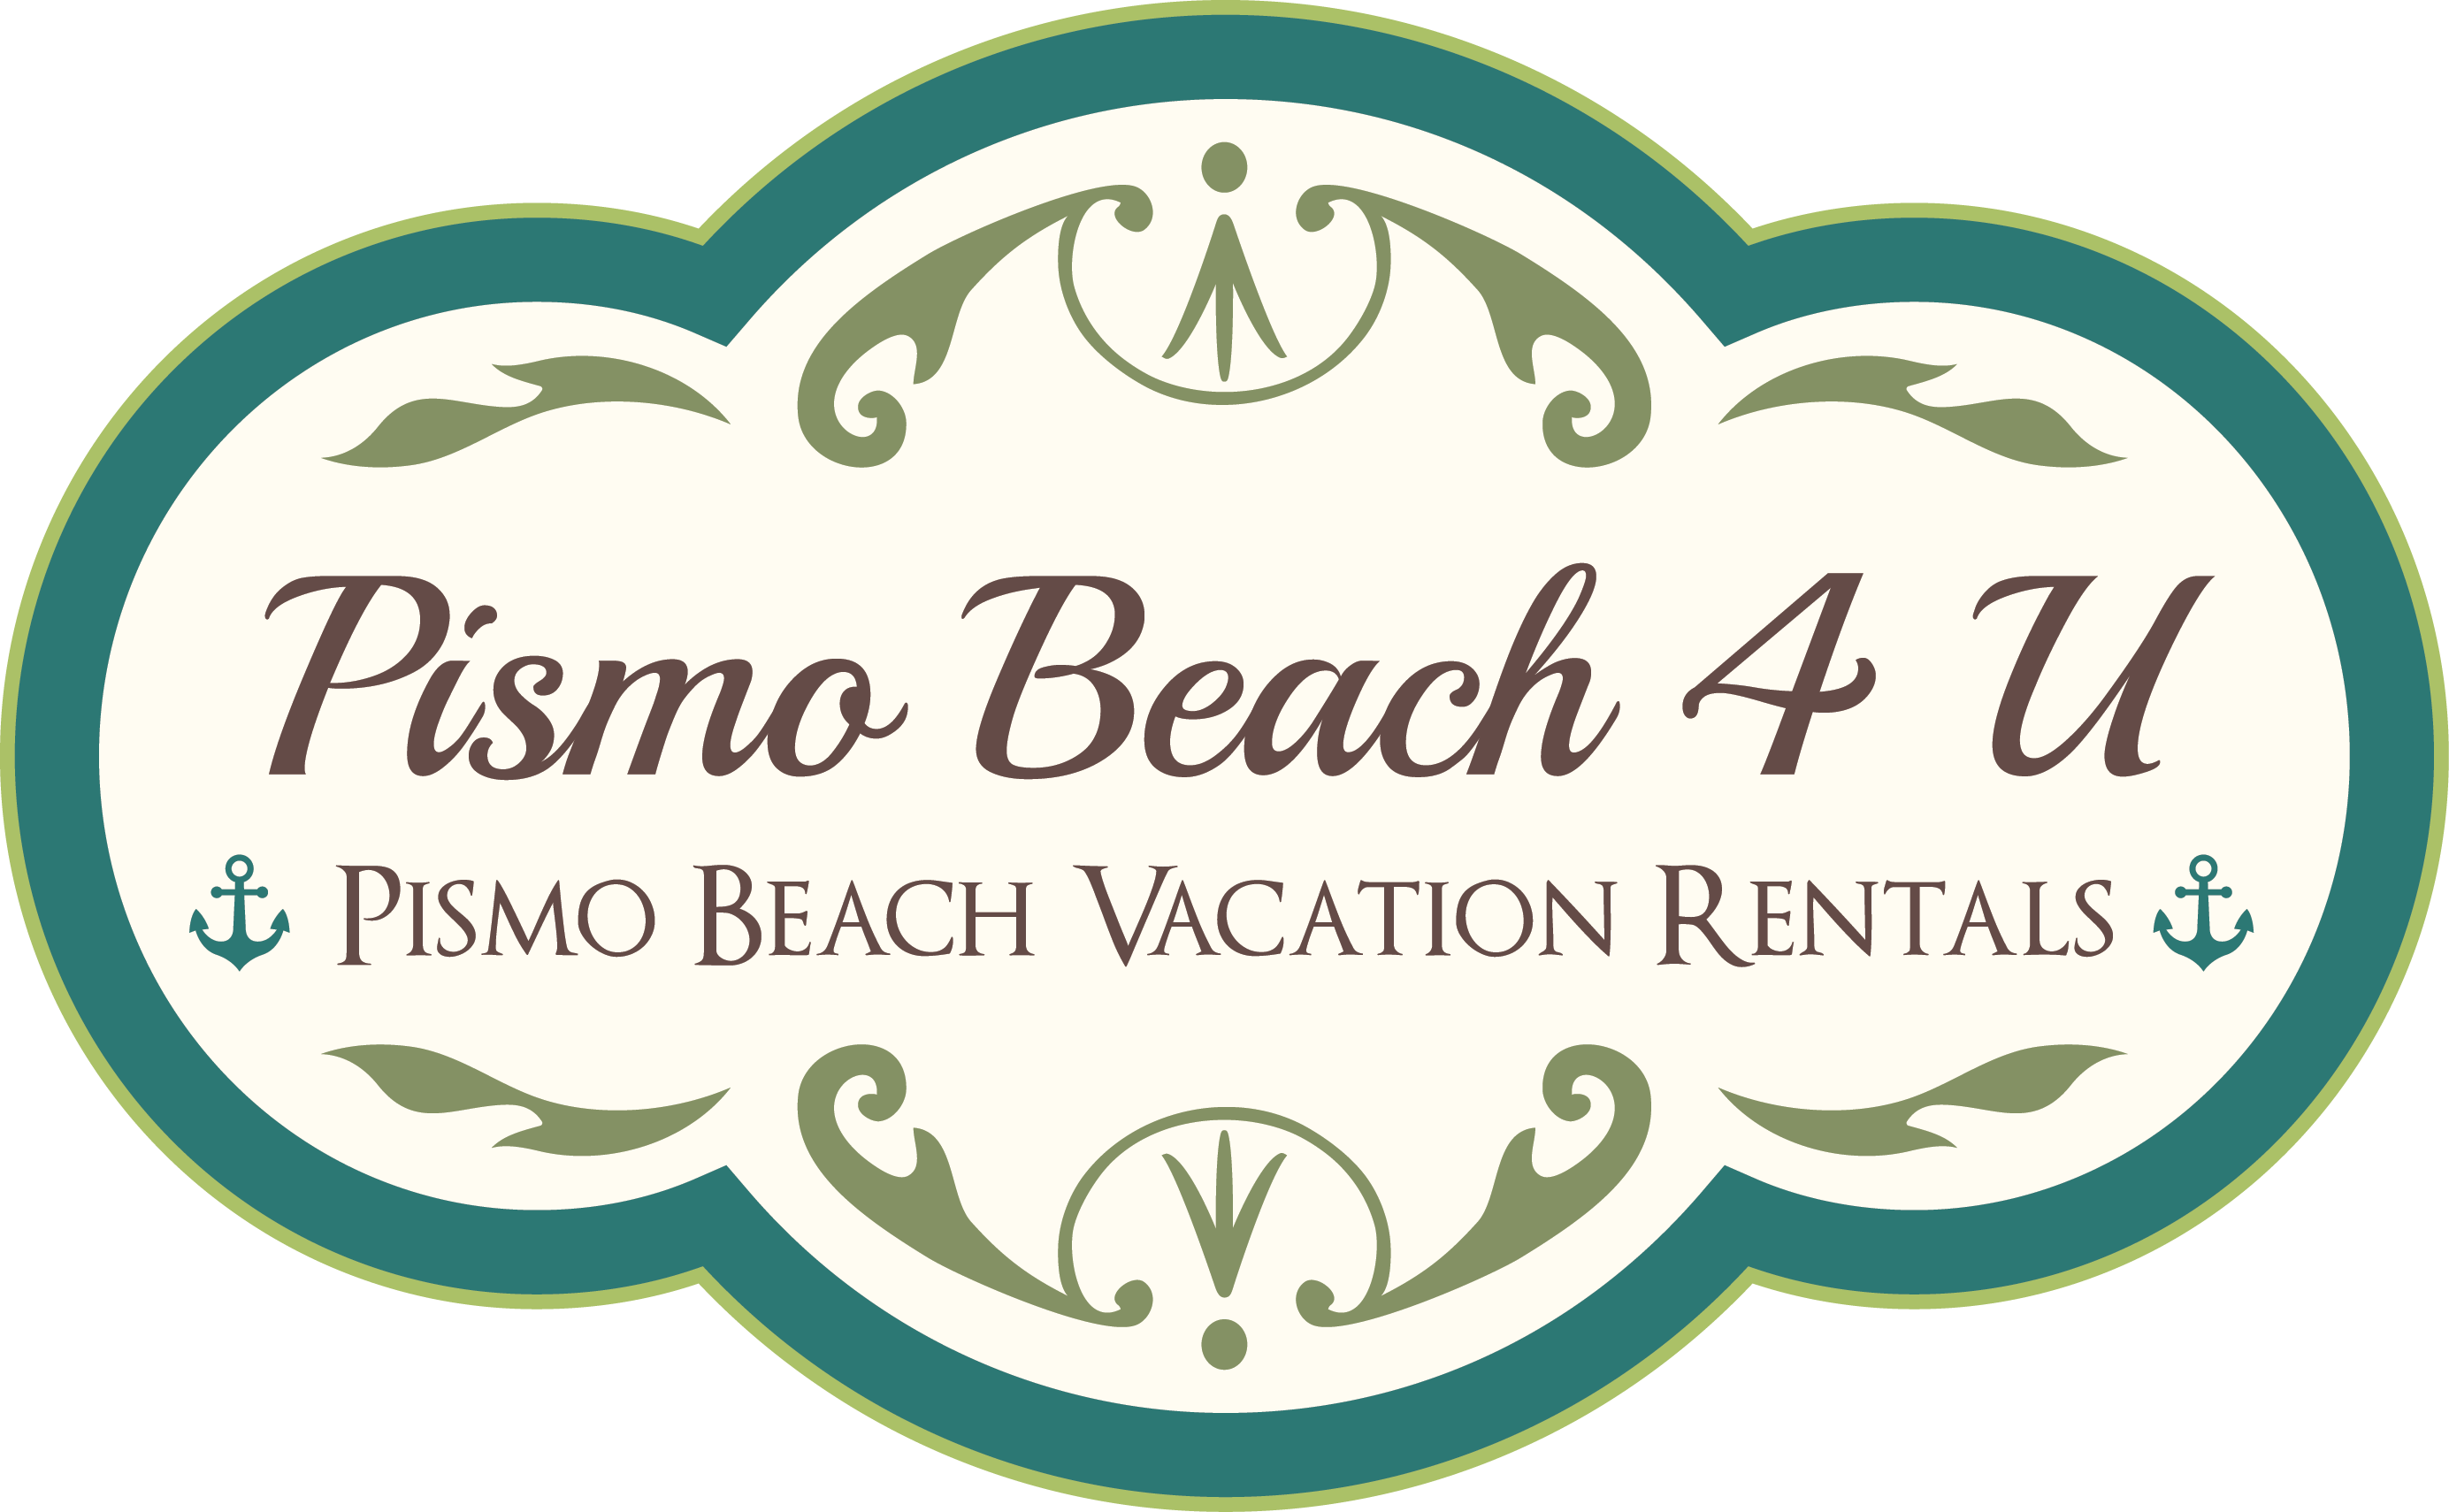 Pismo Beach Vacation Rentals